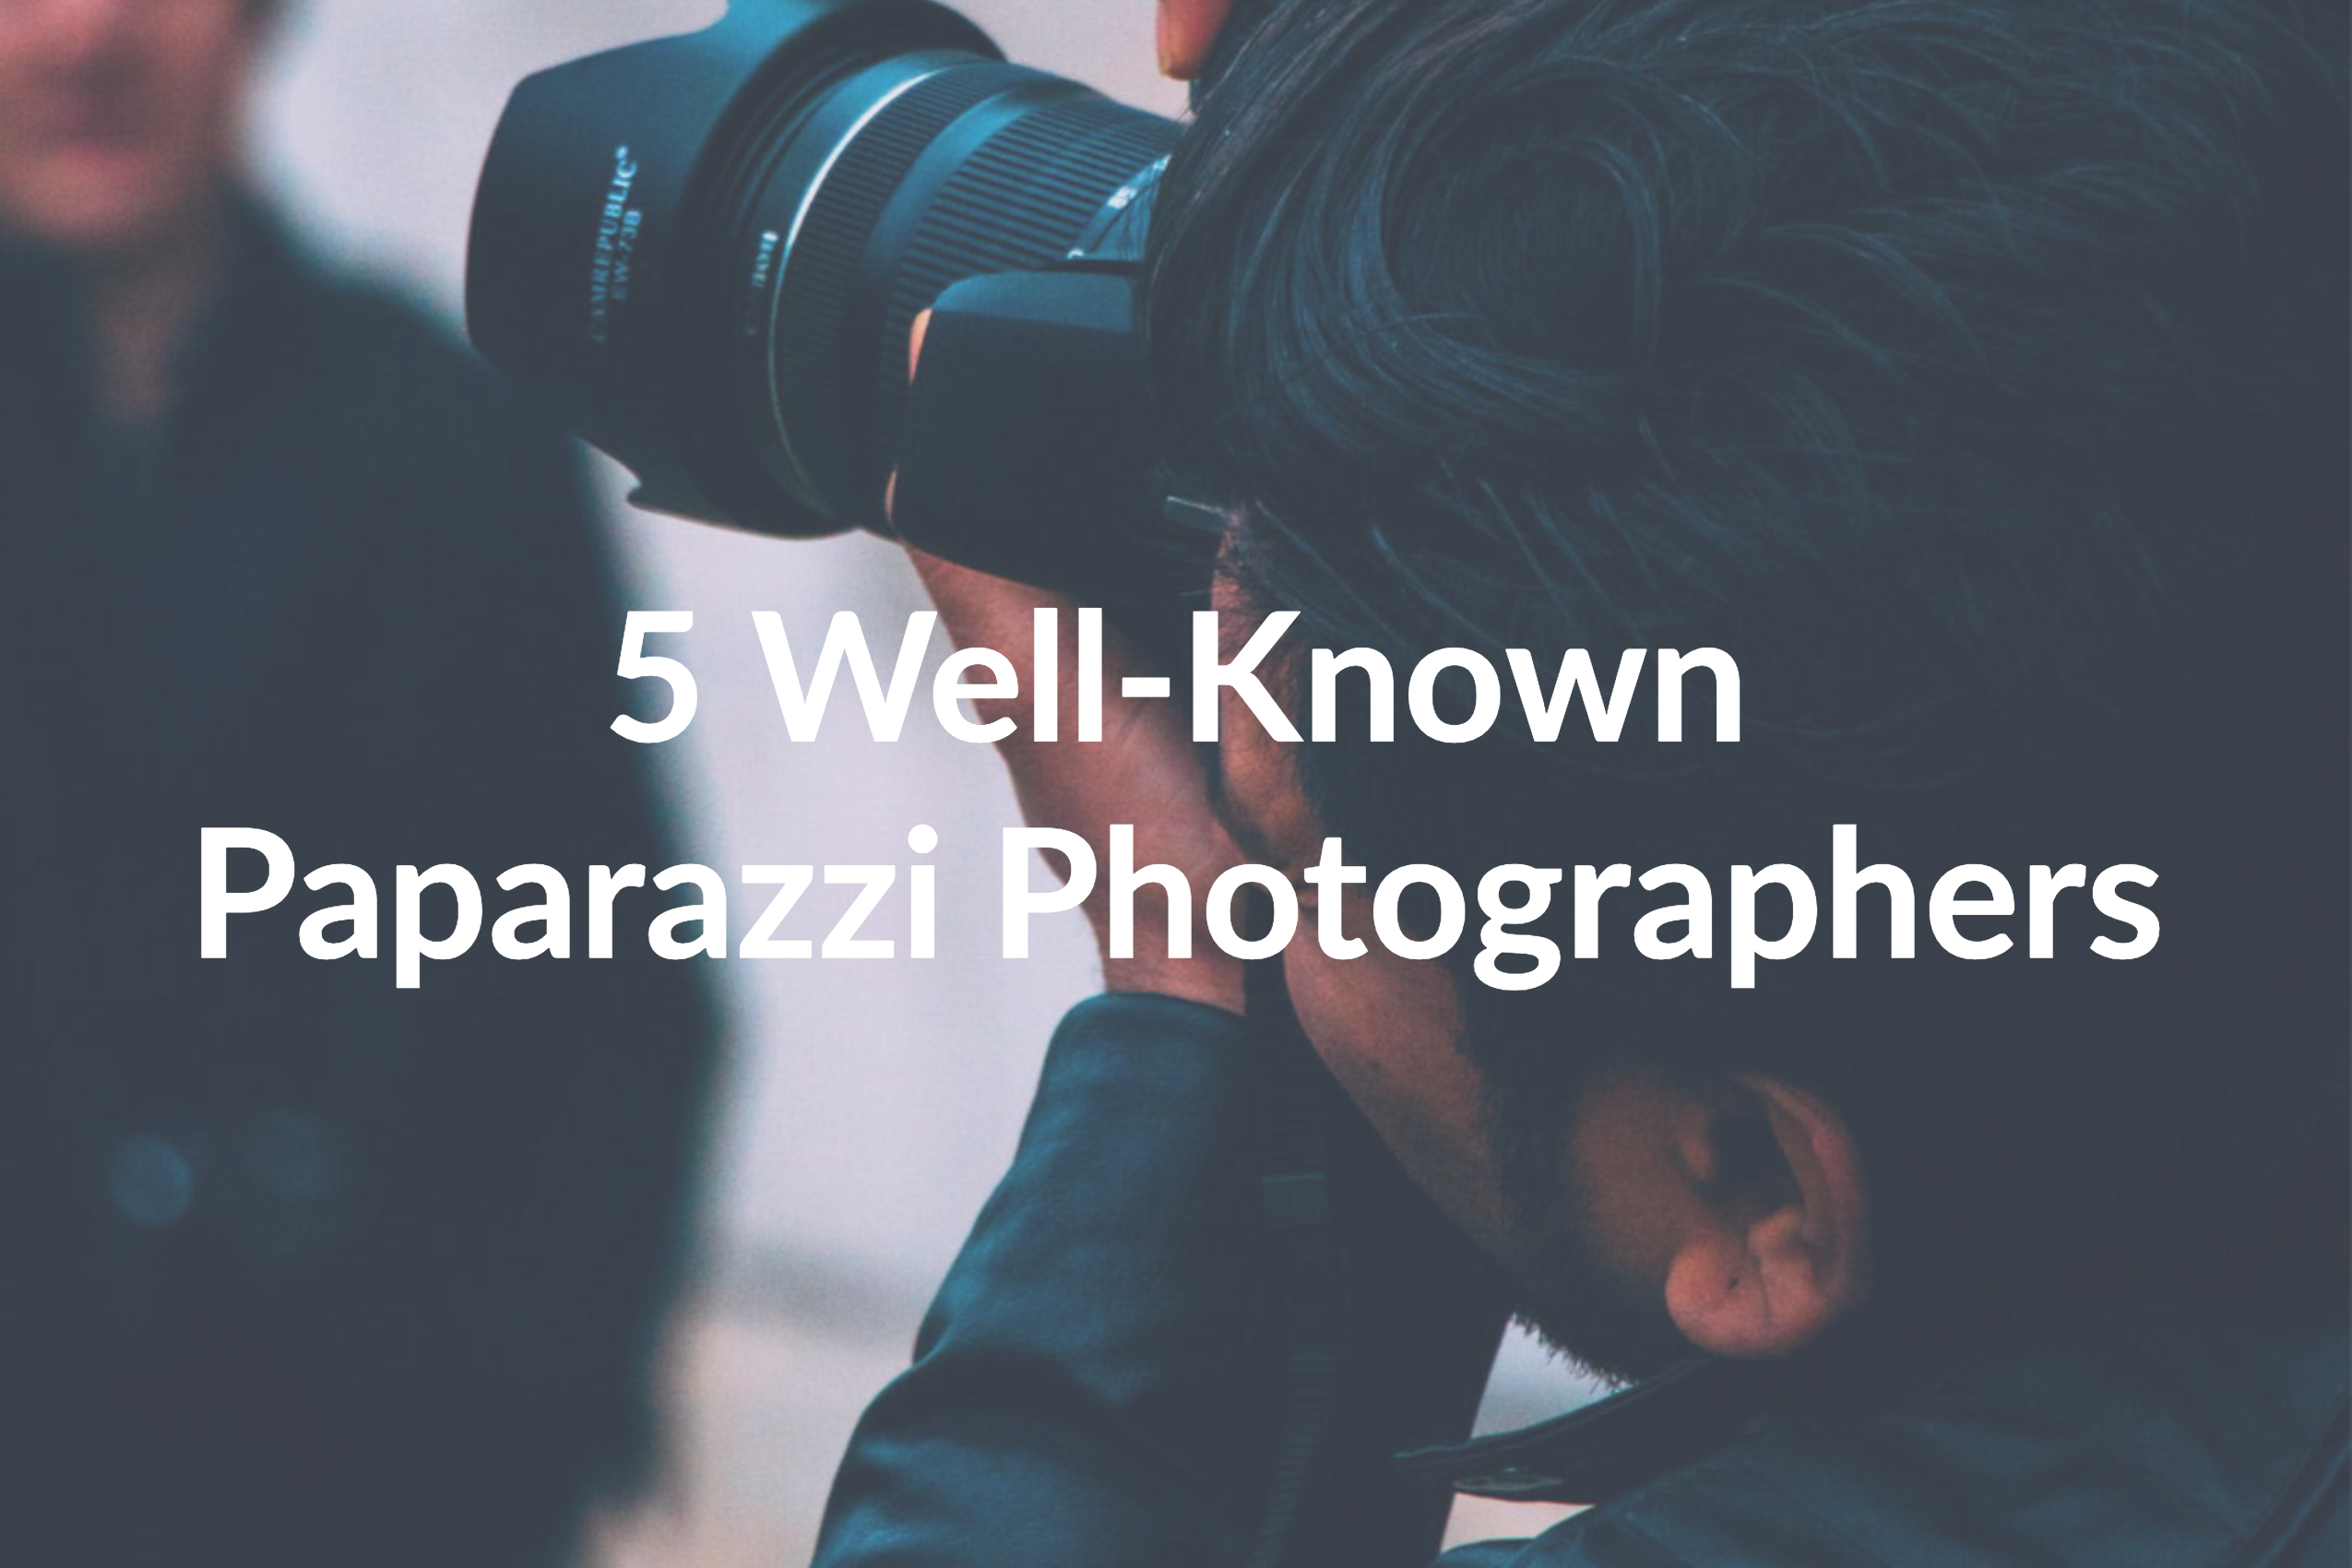 Check out Our List of the Top 5 Celebrity Photographers of All Time